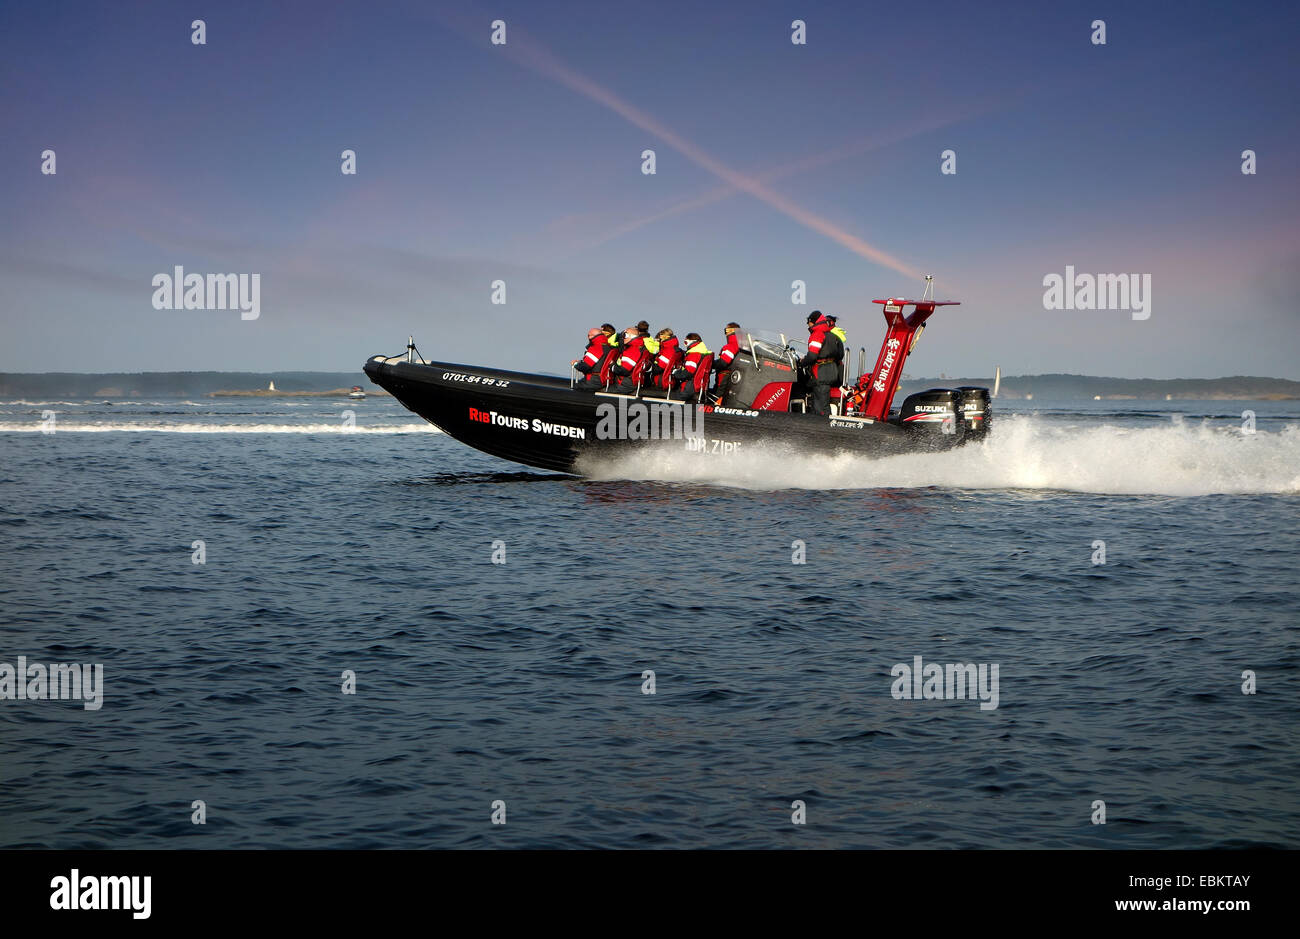 A light-weight high performance  rigid-hulled inflatable boat, (RHIB) or rigid-inflatable boat (RIB) in optimal - Stock Image